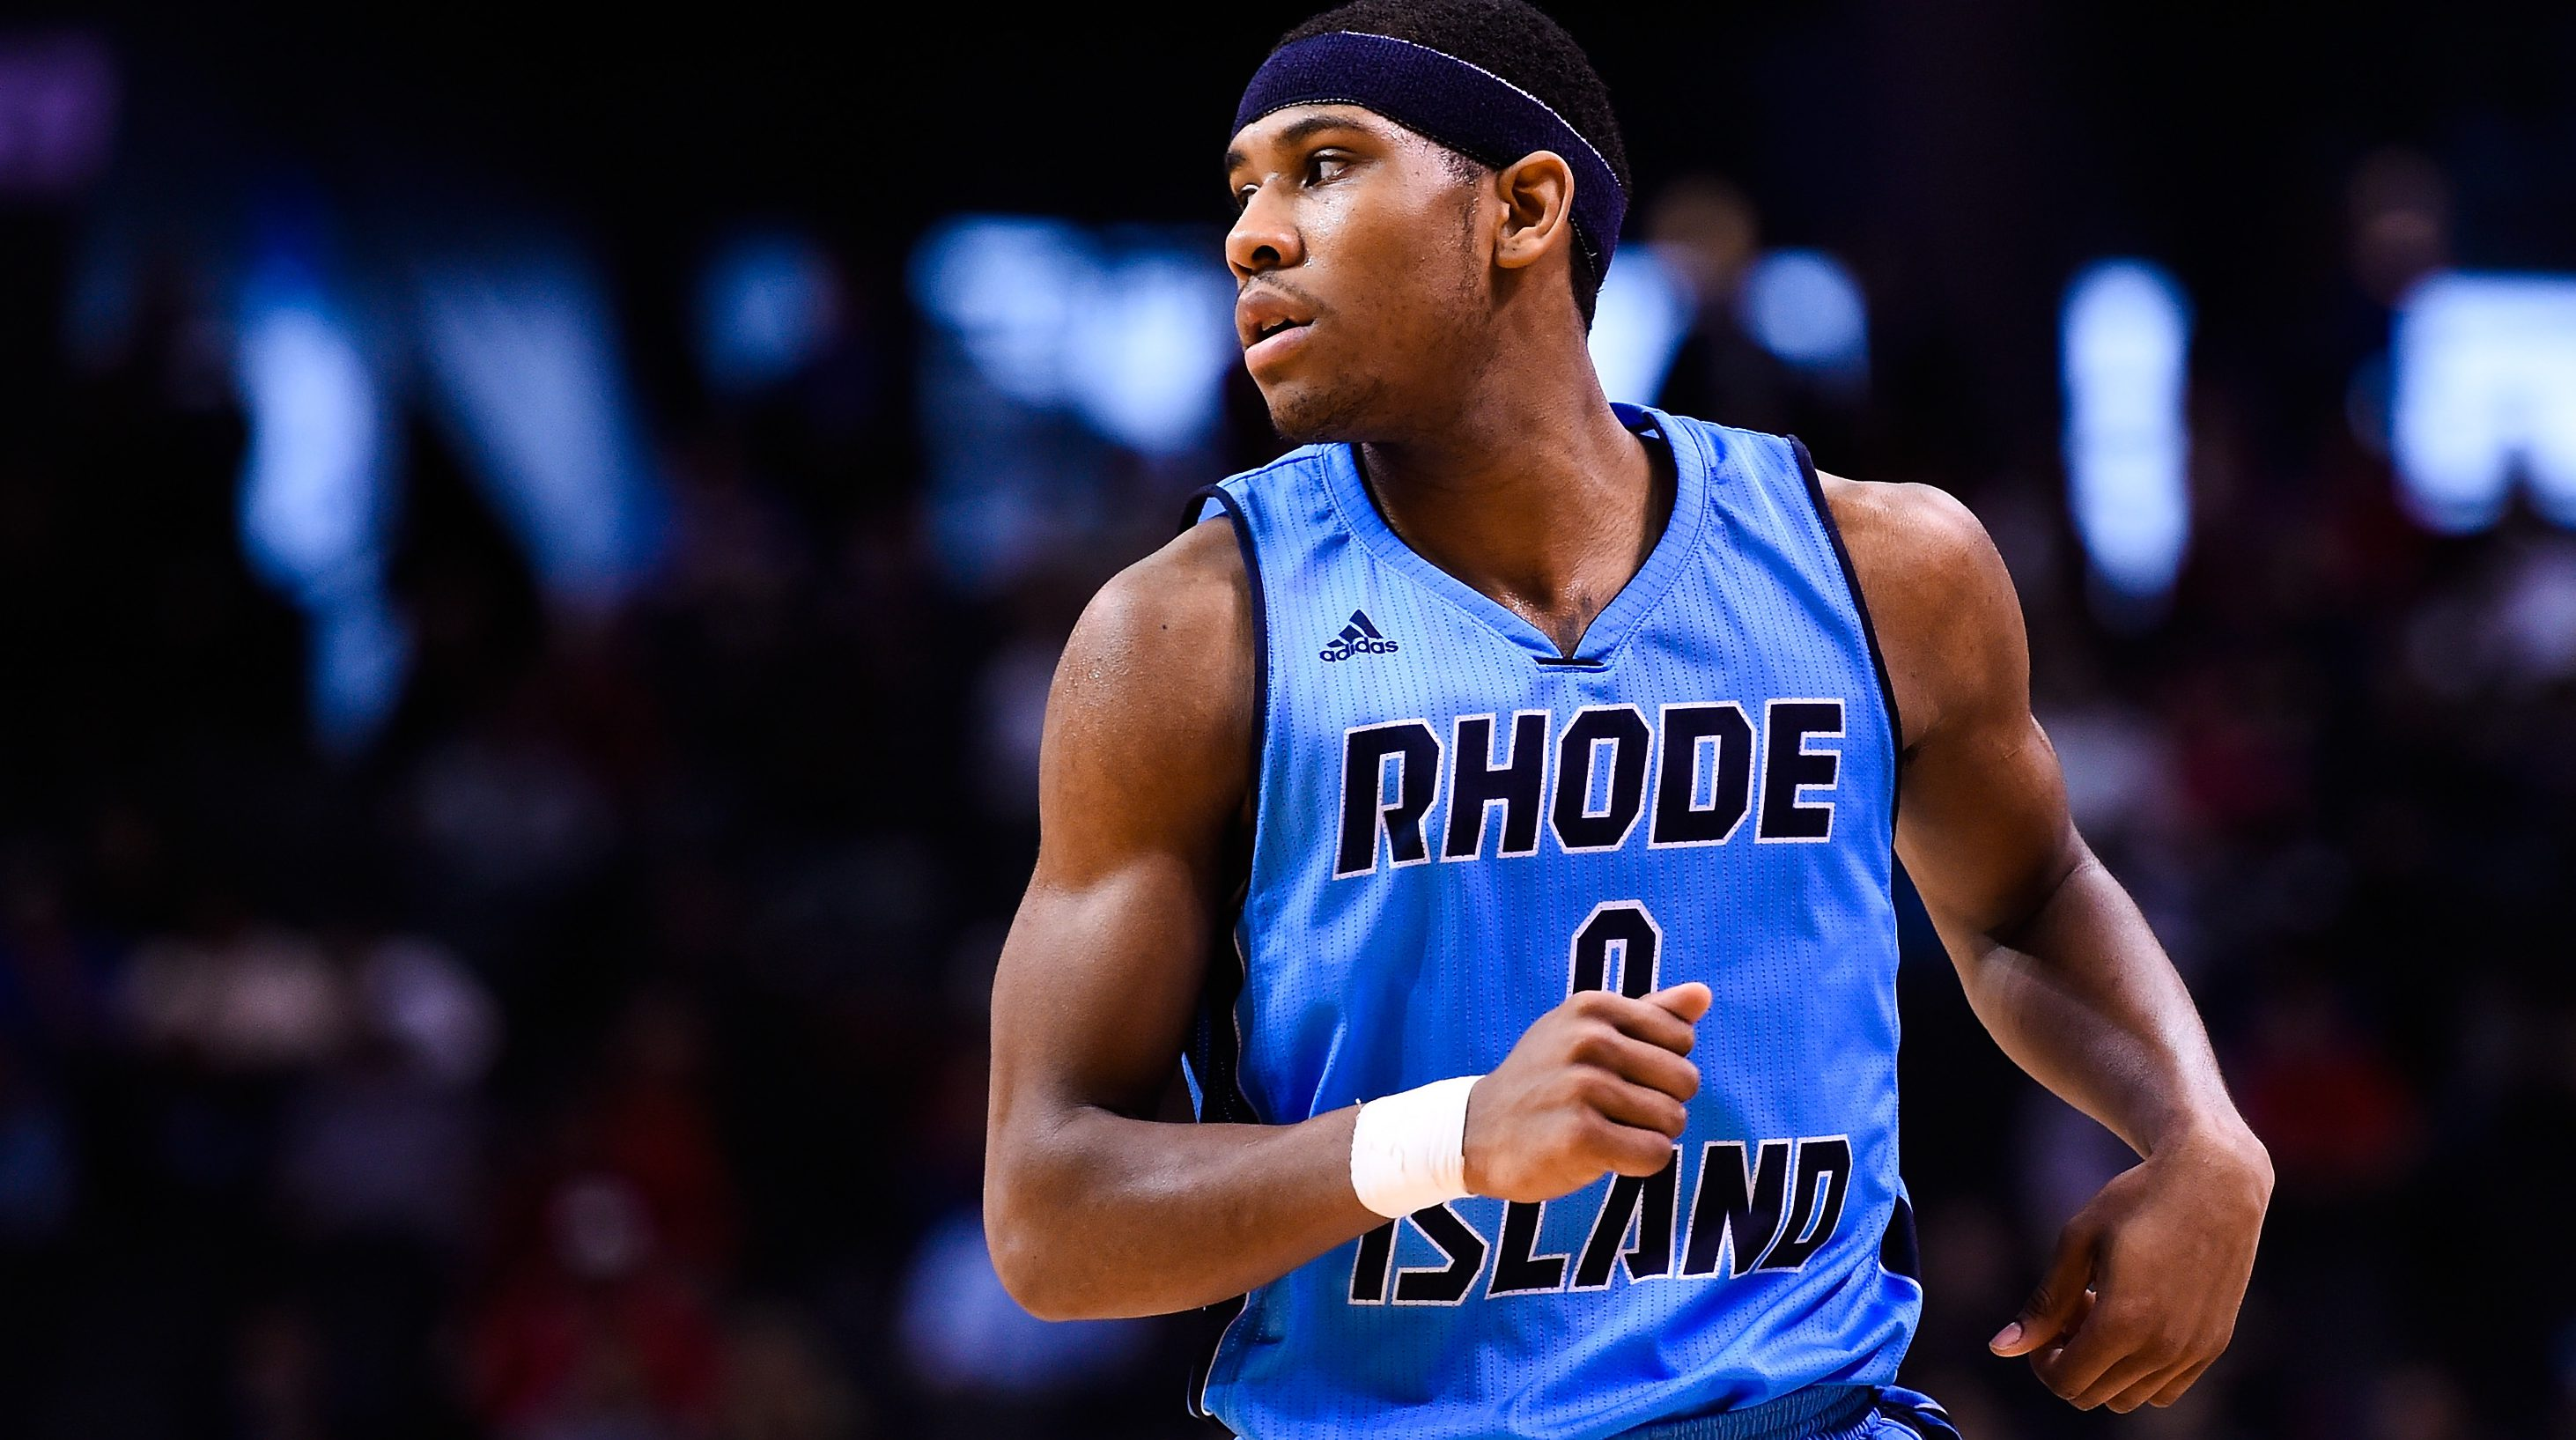 NEW YORK, NY - MARCH 14: E.C. Matthews #0 of the Rhode Island Rams looks on during a semifinal game against the Dayton Flyers in the 2015 Men's Atlantic 10 Basketball Tournament at the Barclays Center on March 14, 2015 in the Brooklyn borough of New York City. (Photo by Alex Goodlett/Getty Images)